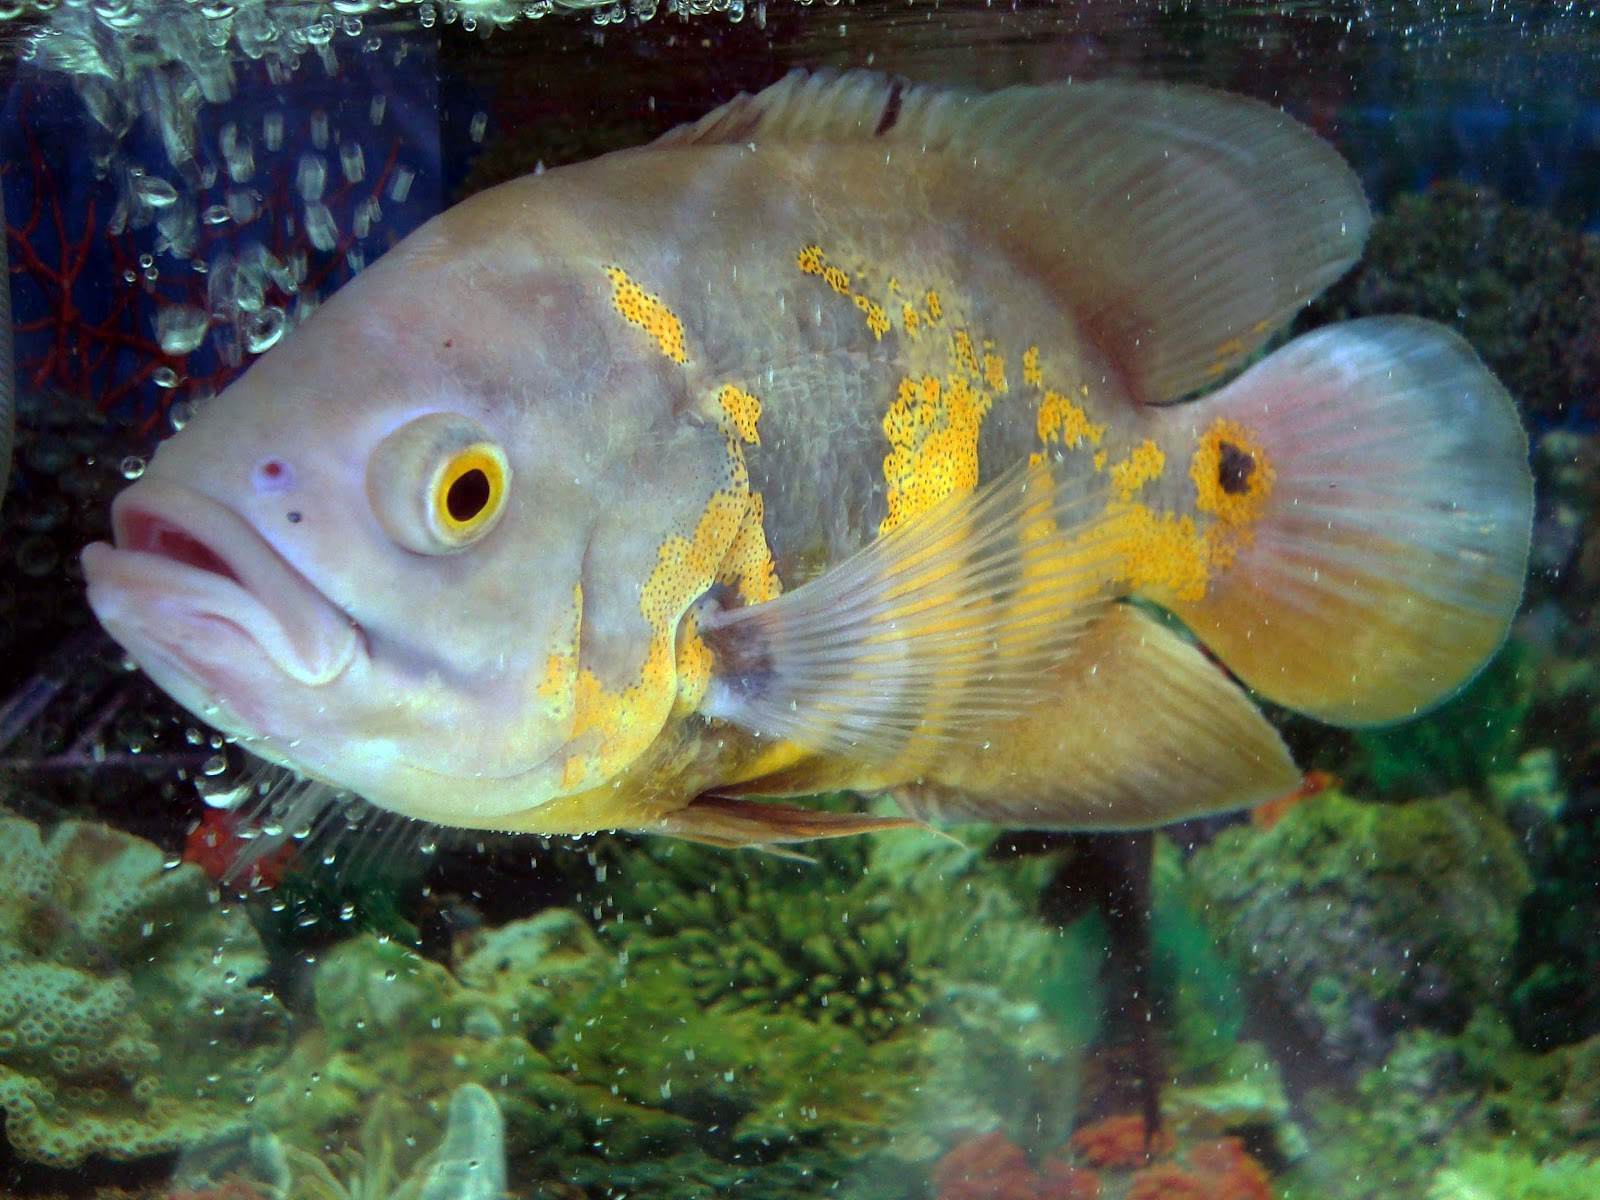 1291000 as well Watch together with Oscar Fish Teeth furthermore Watch additionally Green Moray Eel. on huge oscar fish